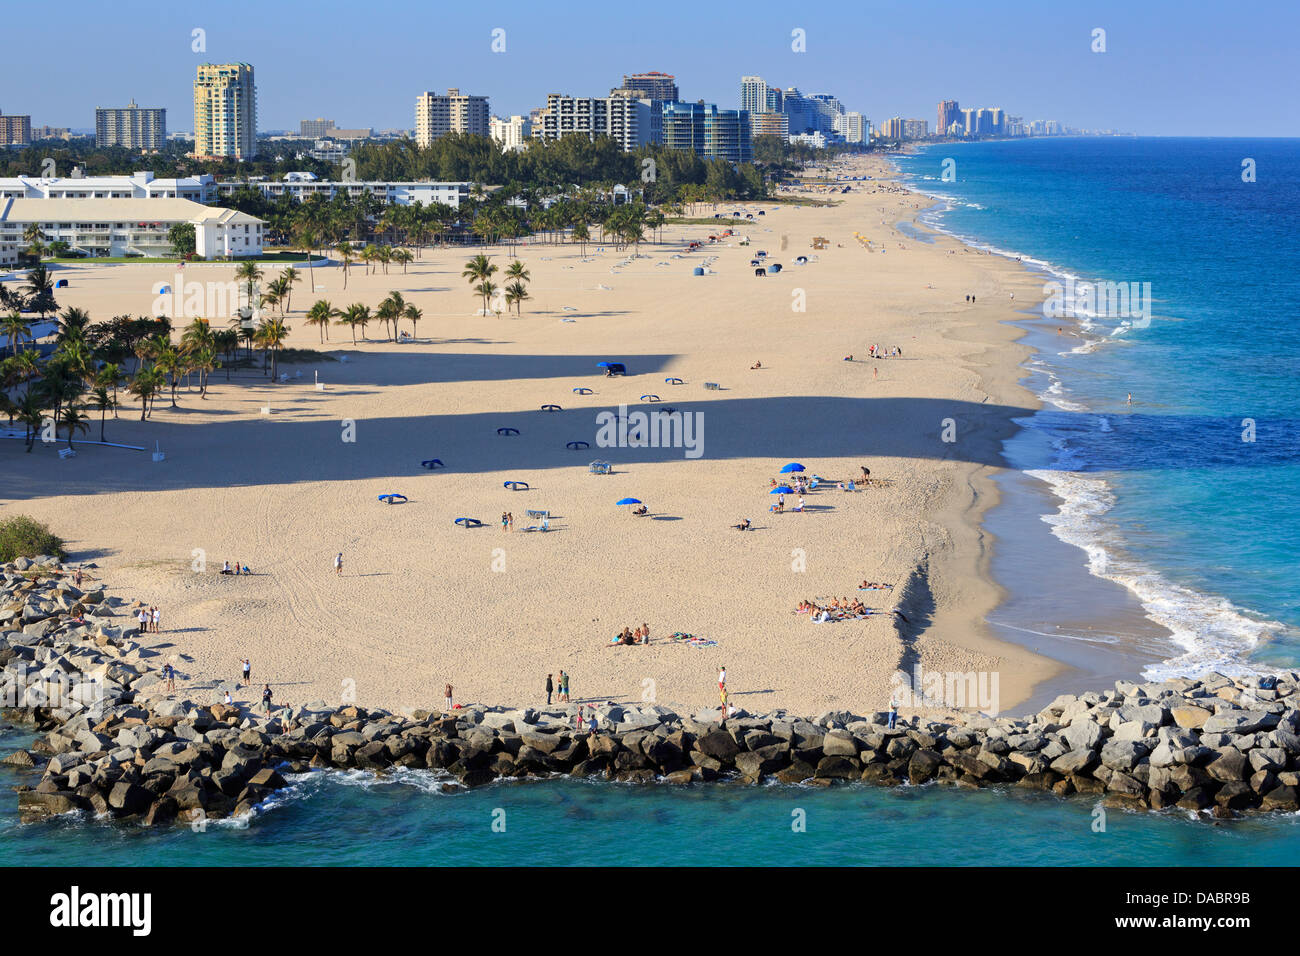 Fort Lauderdale Beach, Florida, United States of America, North America Stock Photo